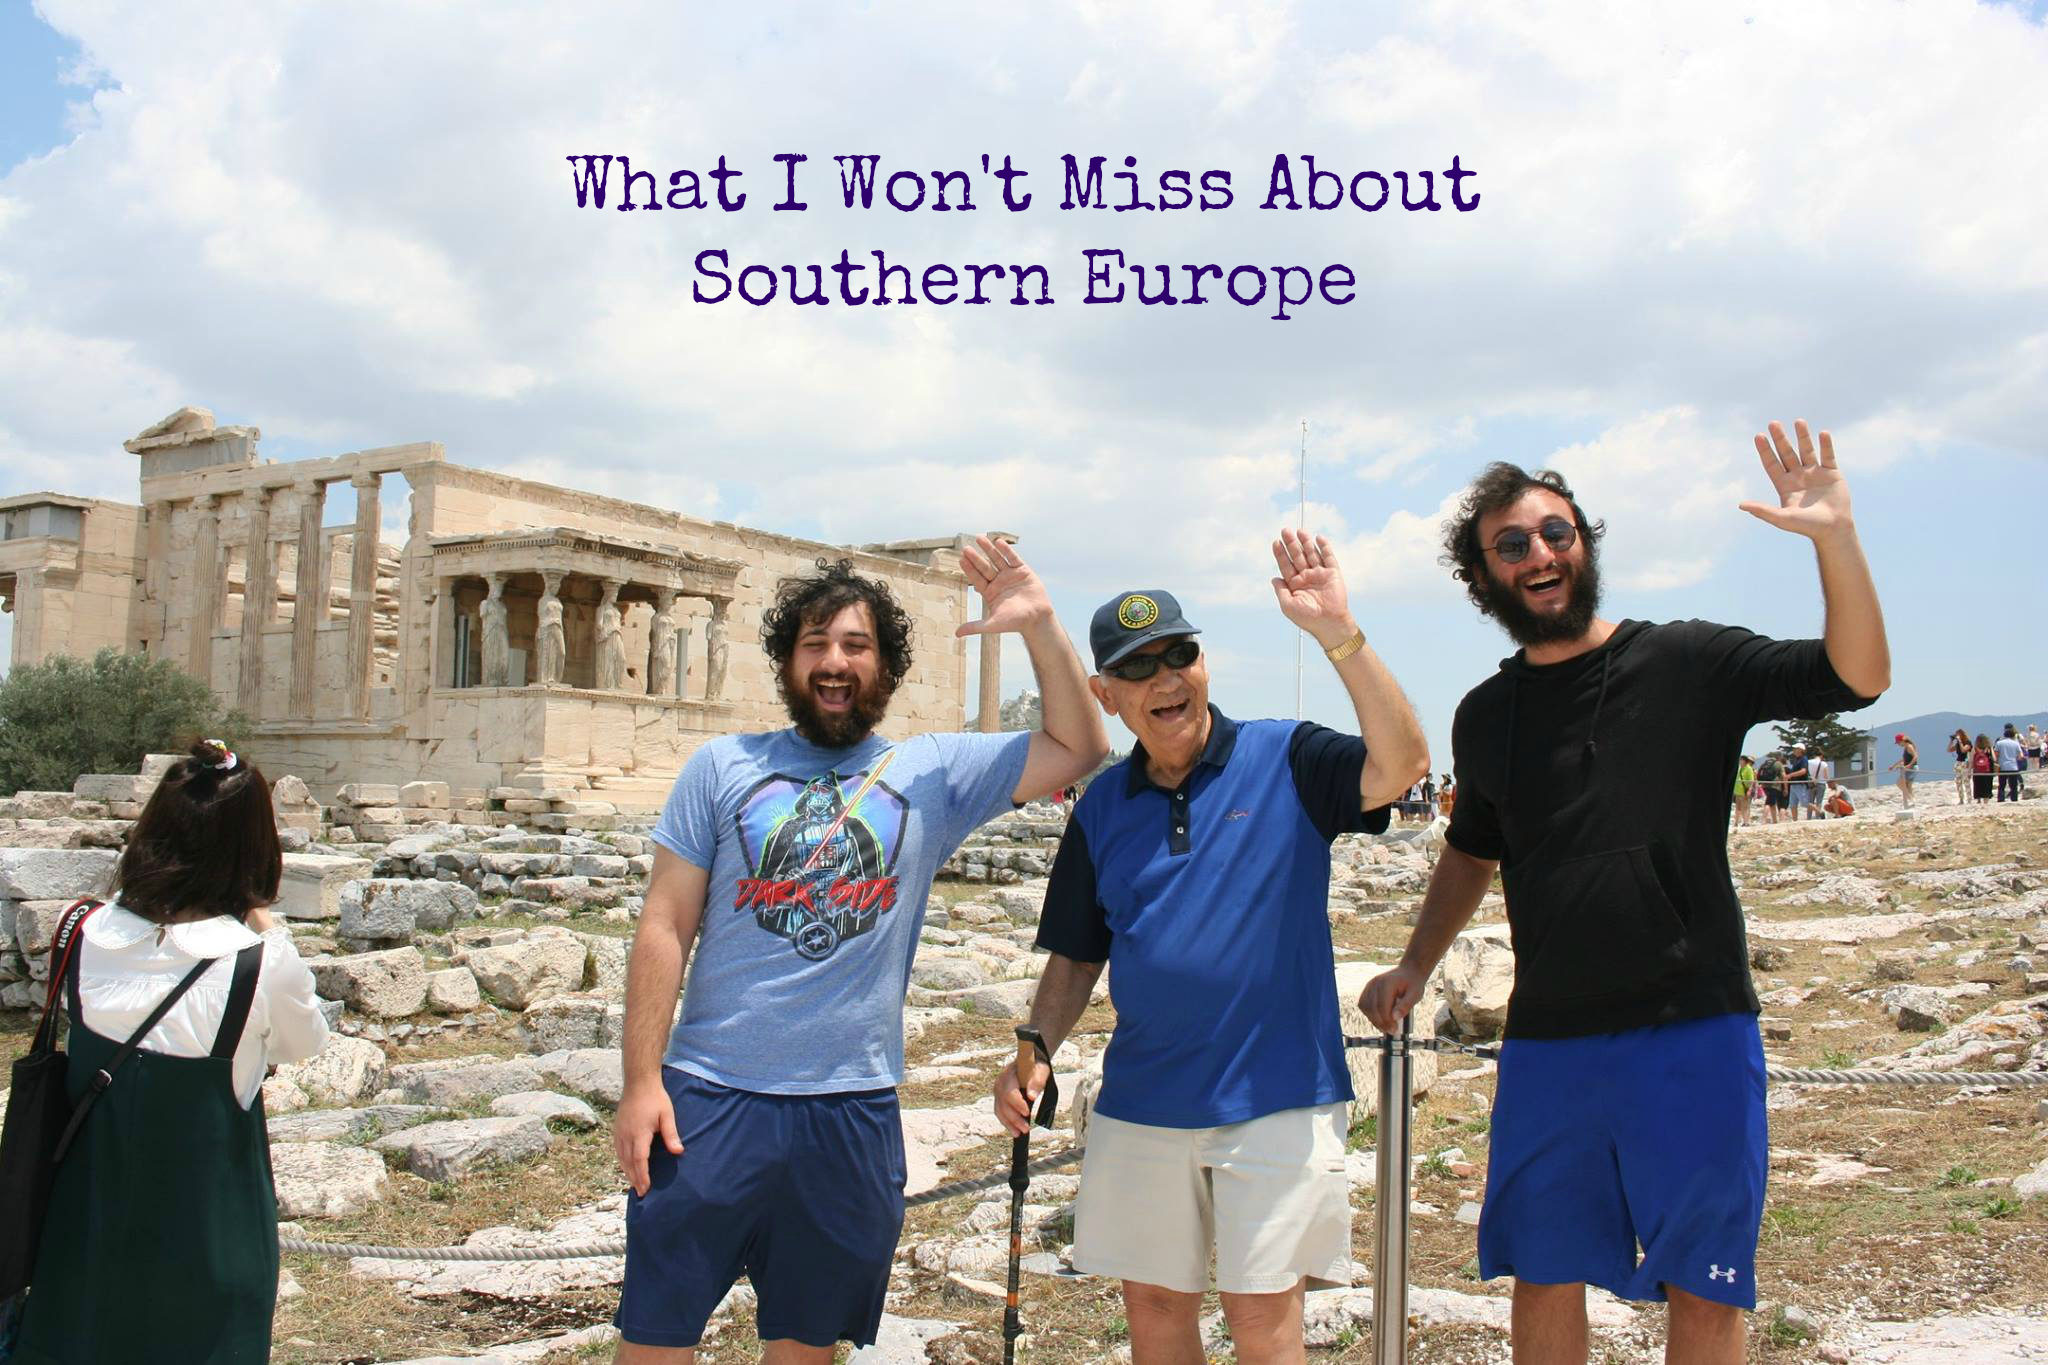 What I Won't Miss About Southern Europe